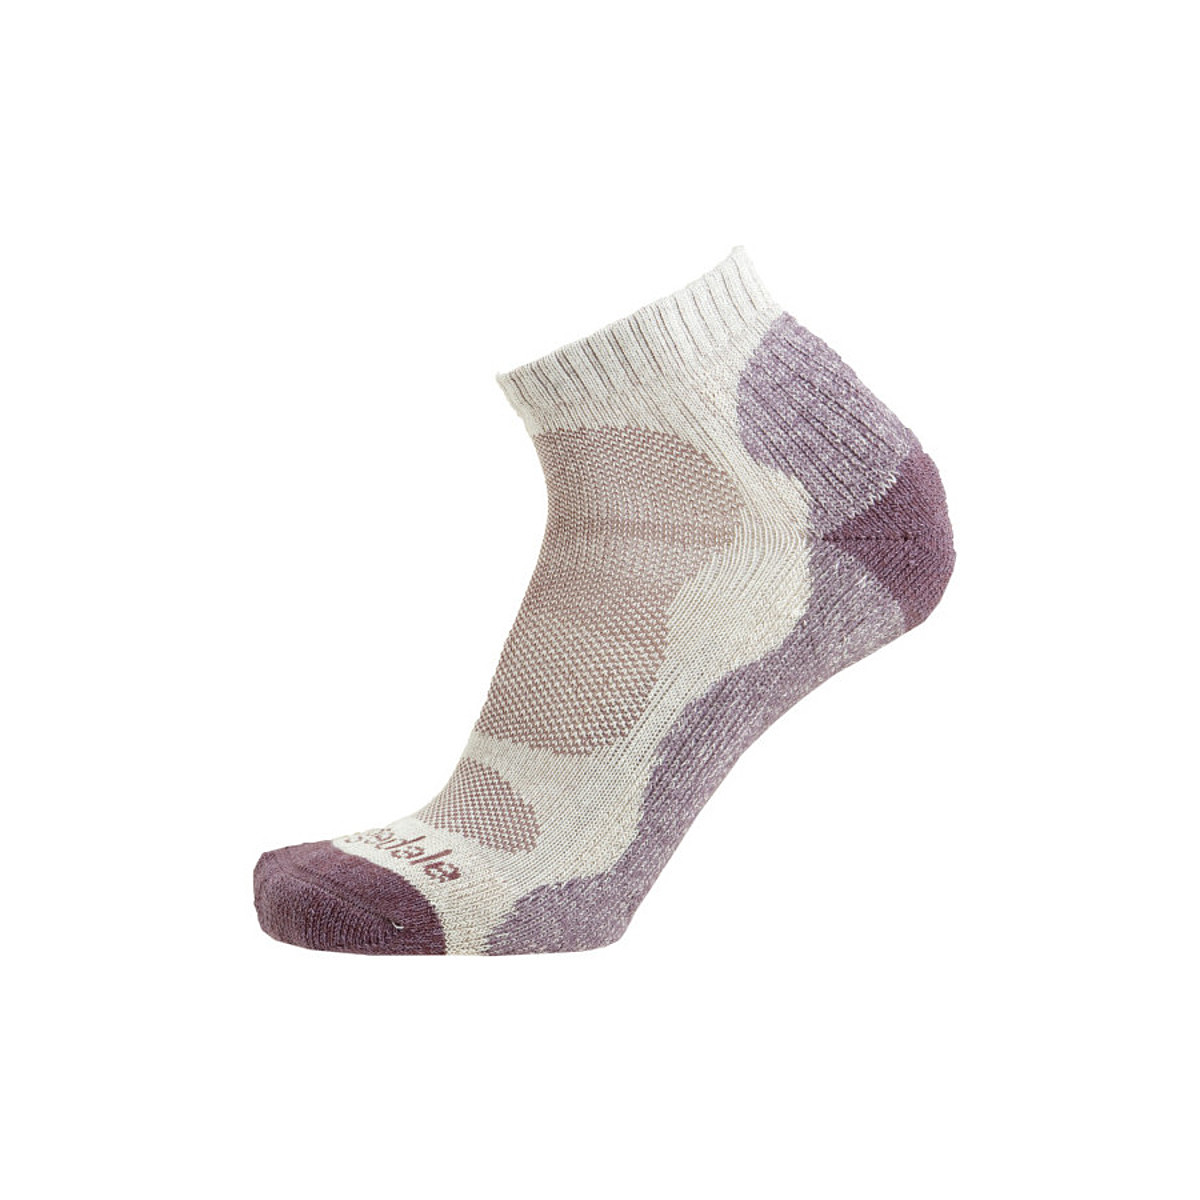 photo of a Bridgedale running sock